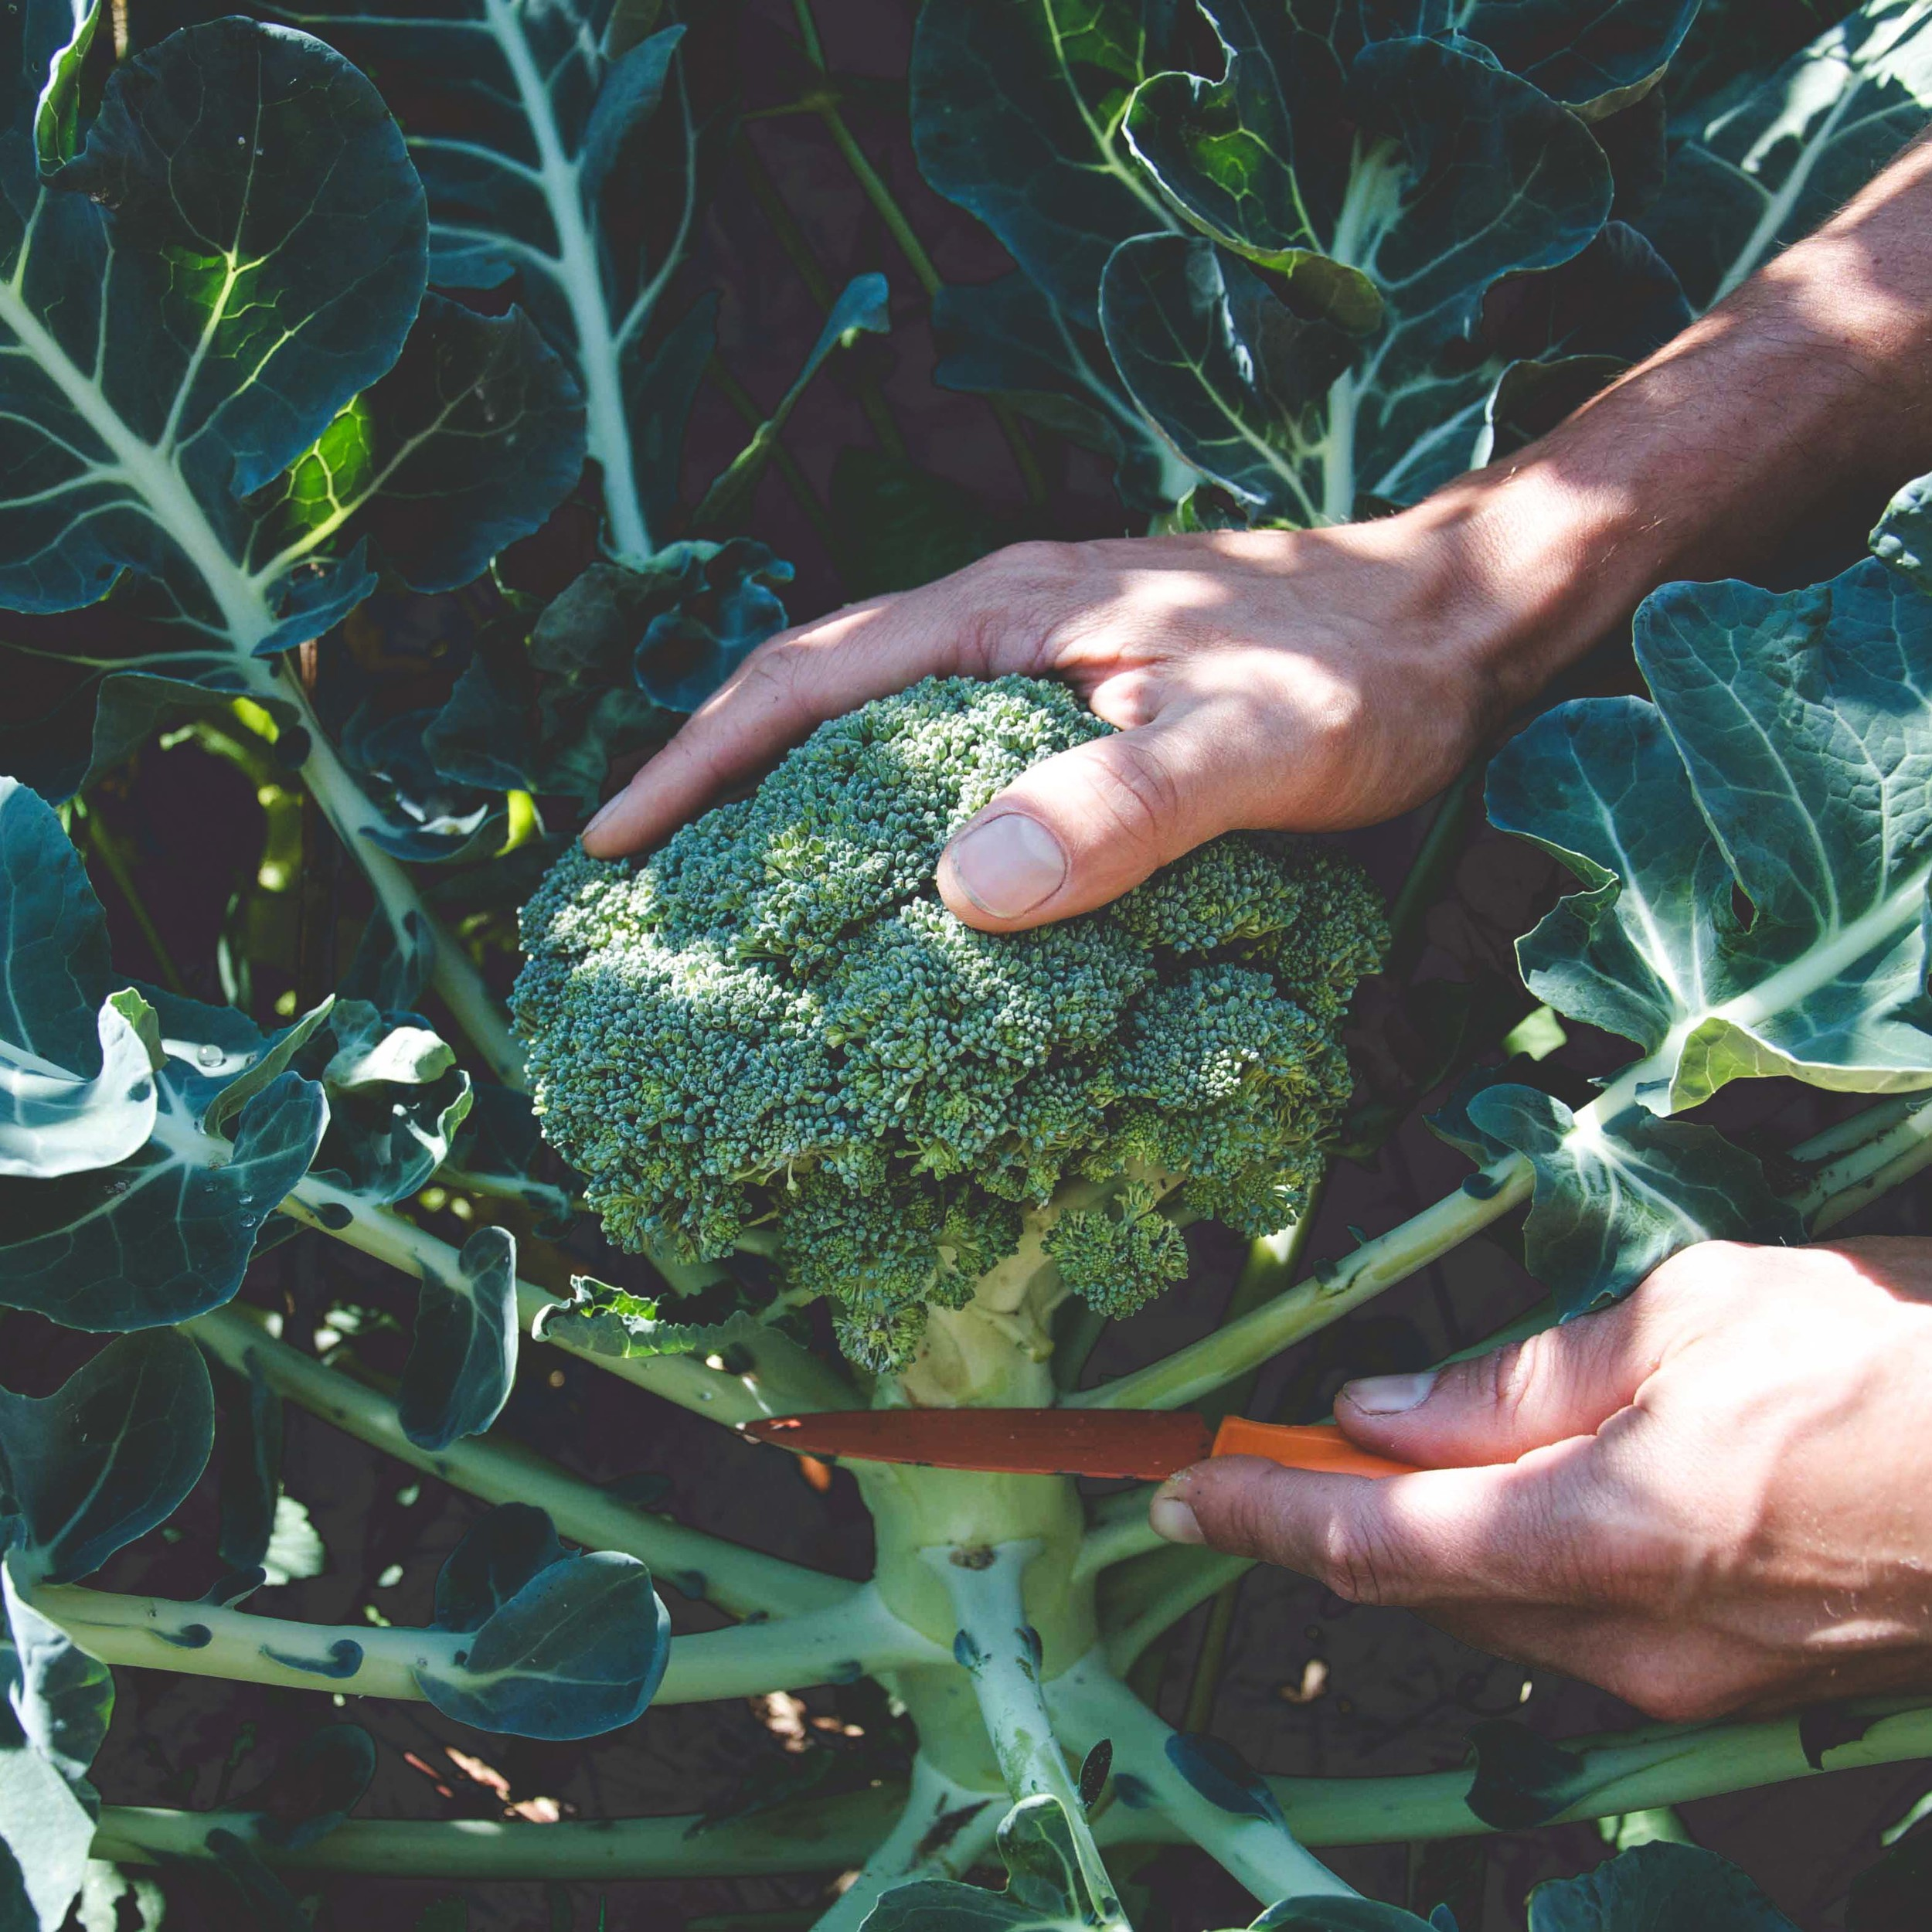 Broccoli    Bay Meadows* and Arcadia  //  Frost tolerant and will overwinter in mild climates. Overwintered crop may produce florets in early spring. Must be transplanted into gardens by mid-September in the Pacific Northwest.